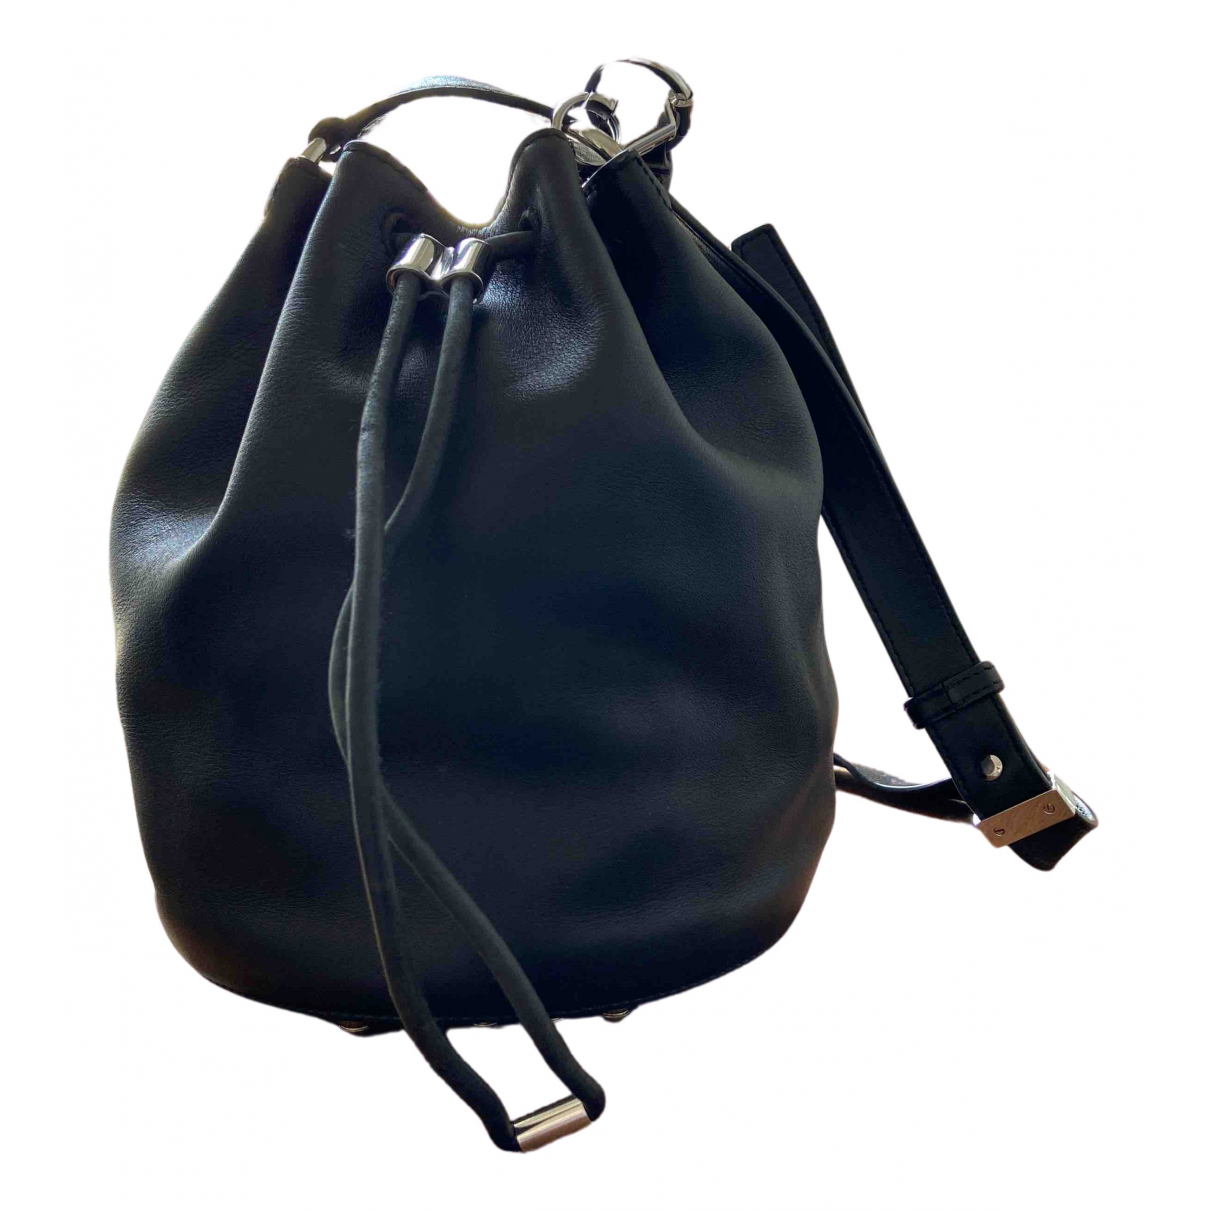 Alexander Wang N Black Leather handbag for Women N